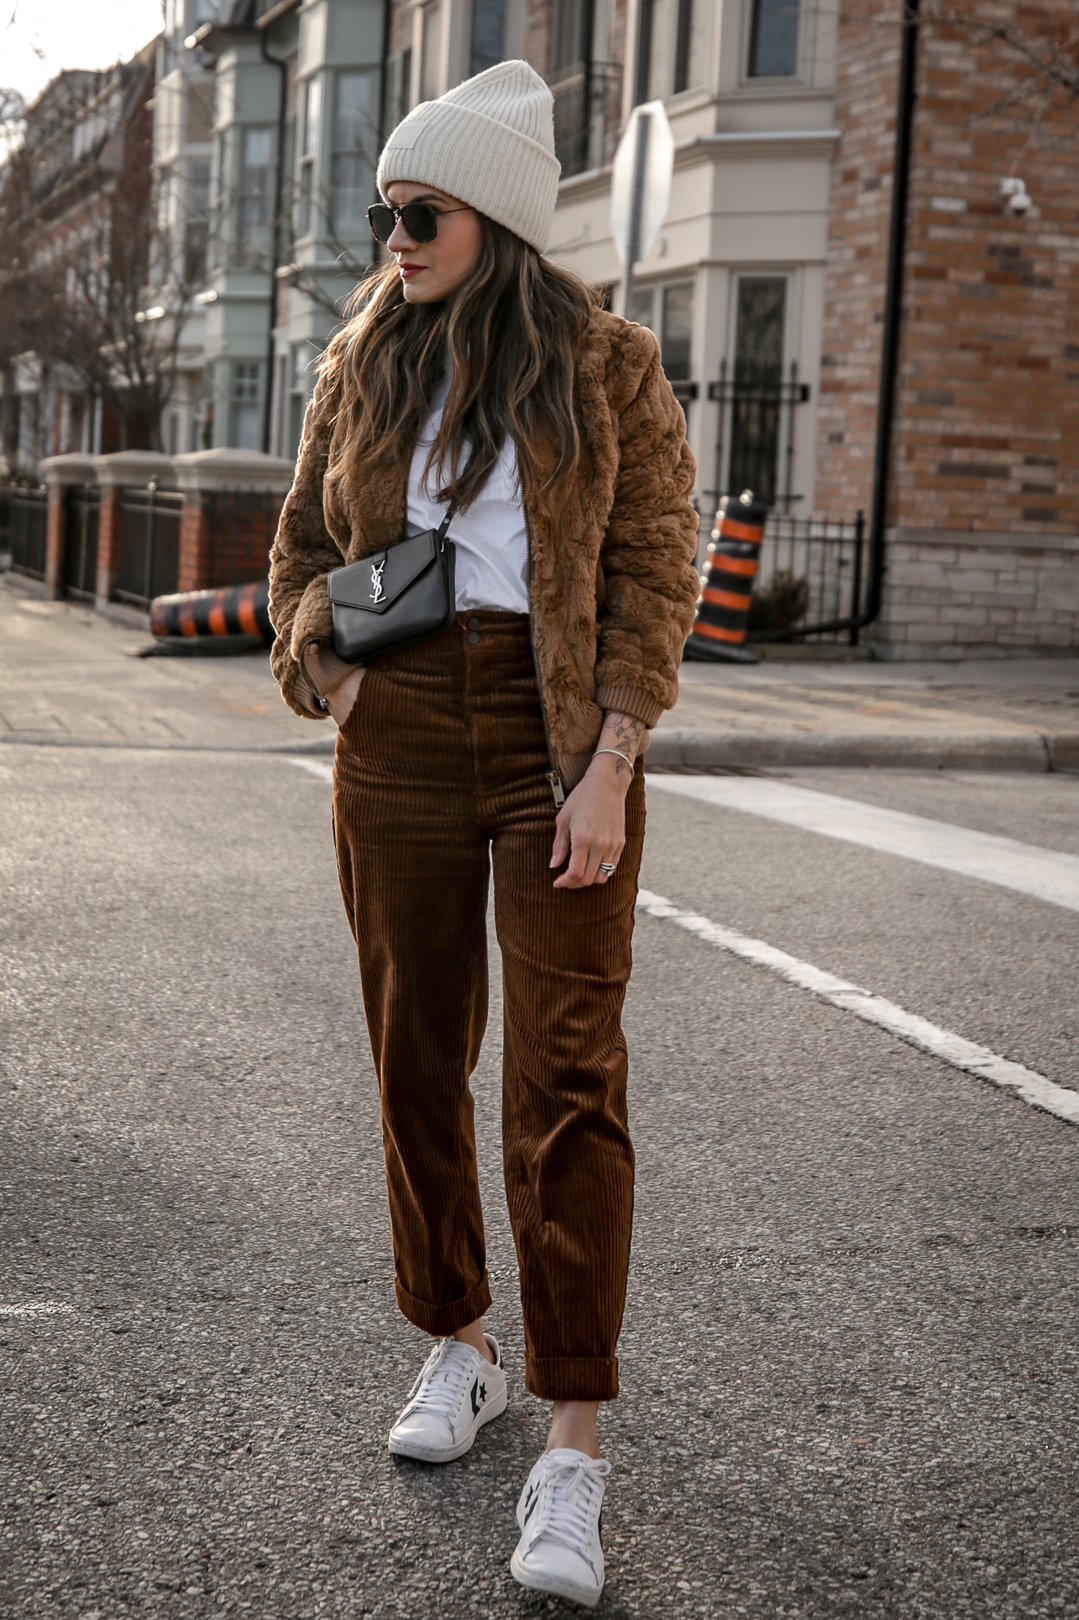 Nathalie Martin wearing brown teddy bear bomber jacket, corduroy pants, Sandro LOVE t-shirt, white sneakers, Saint Laurent Paris black bag, ivory Acne Studios Pansy face beanie, street style, Luka Sabbat inspired, woahstyle.com_5051.jpg